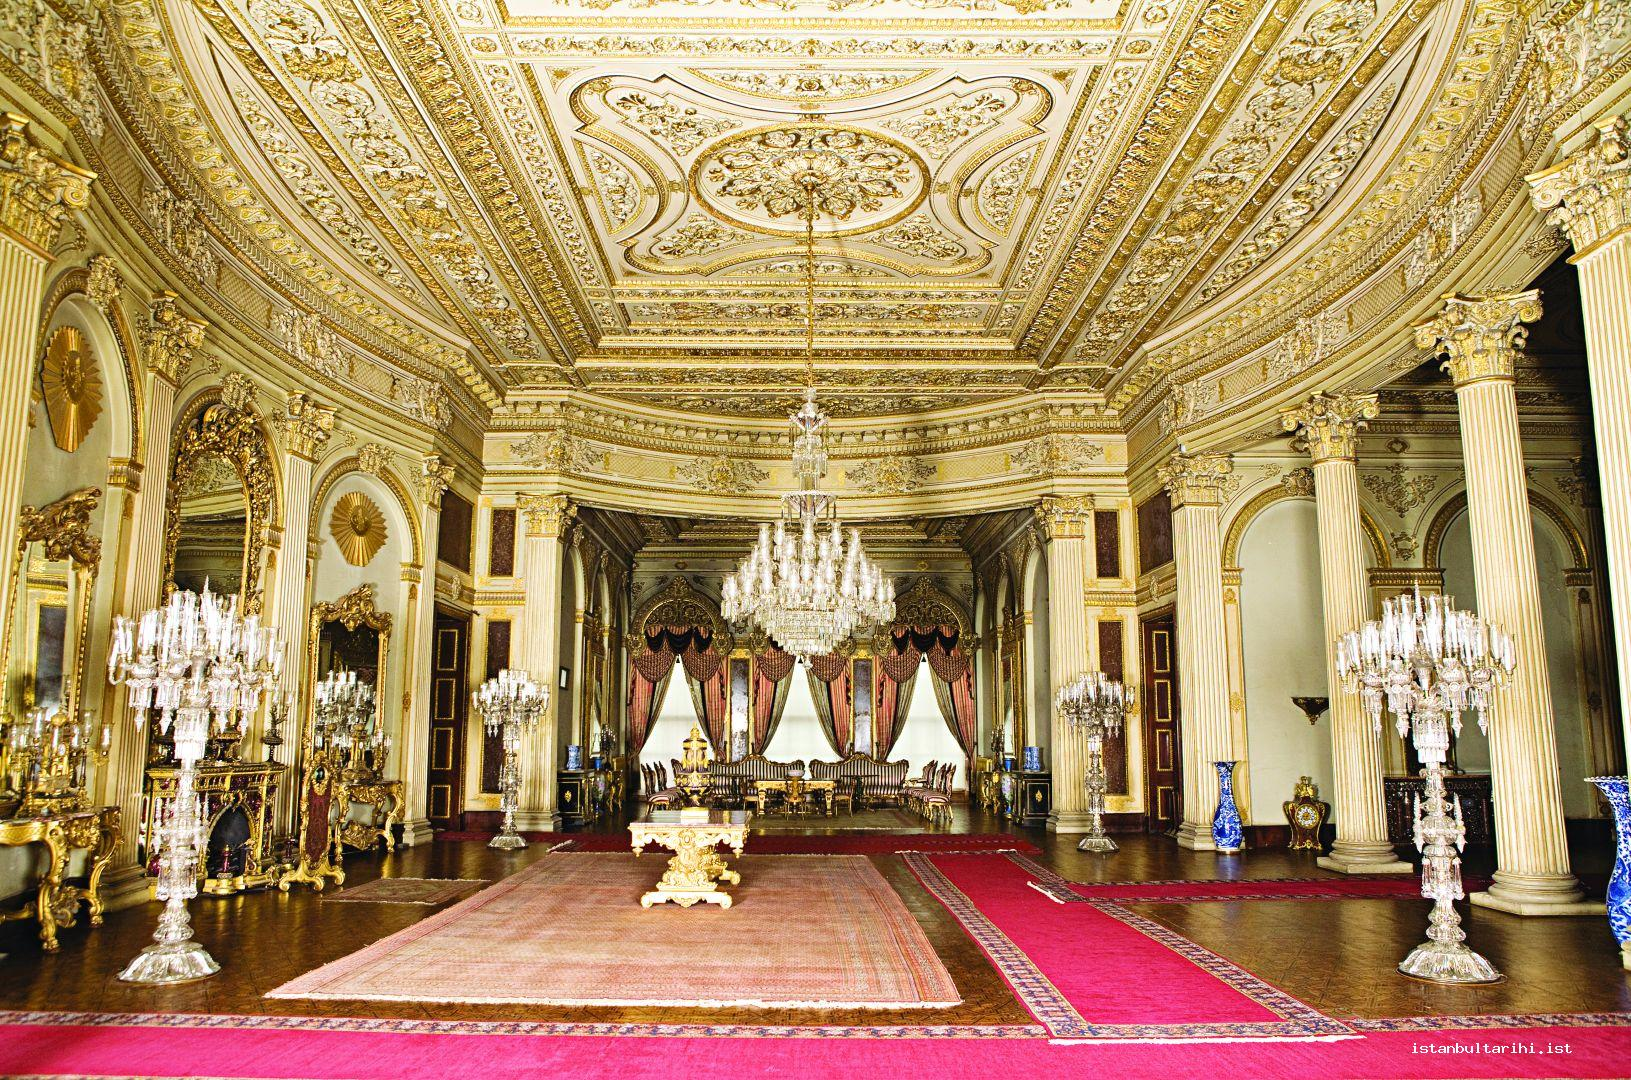 6- Muayede Hall (the hall for exchanging festival greetings) in Dolmabahçe Palace